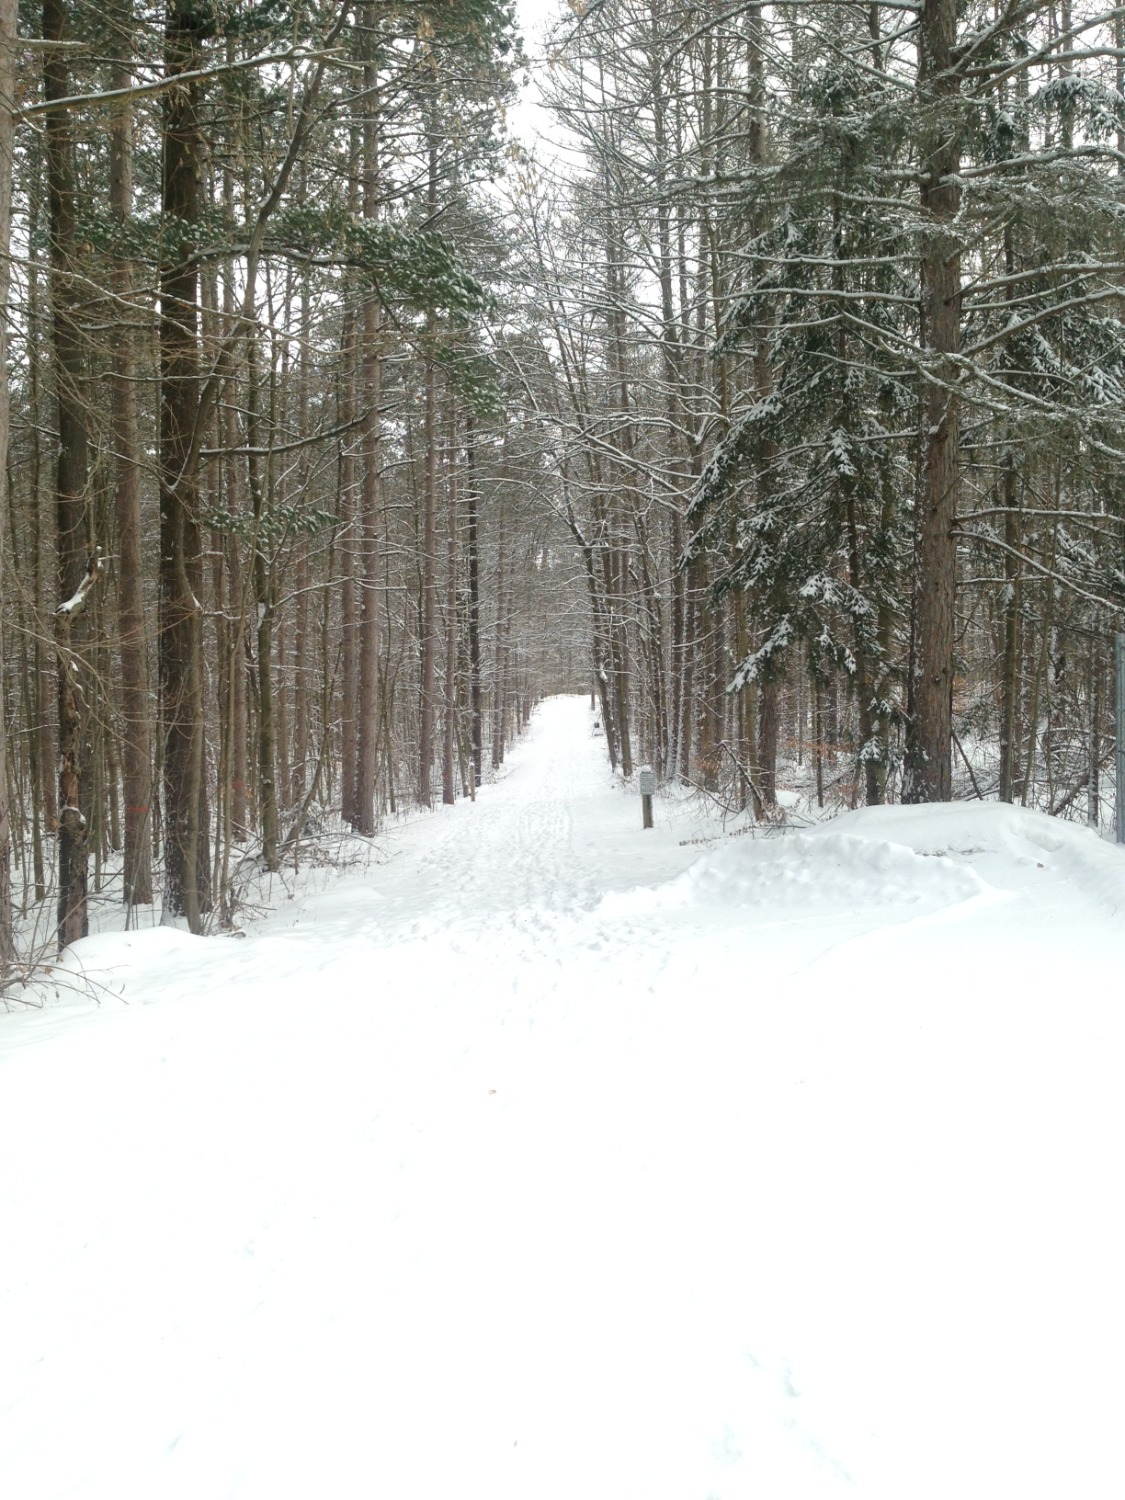 Snowshoeing at Hollidge Tract